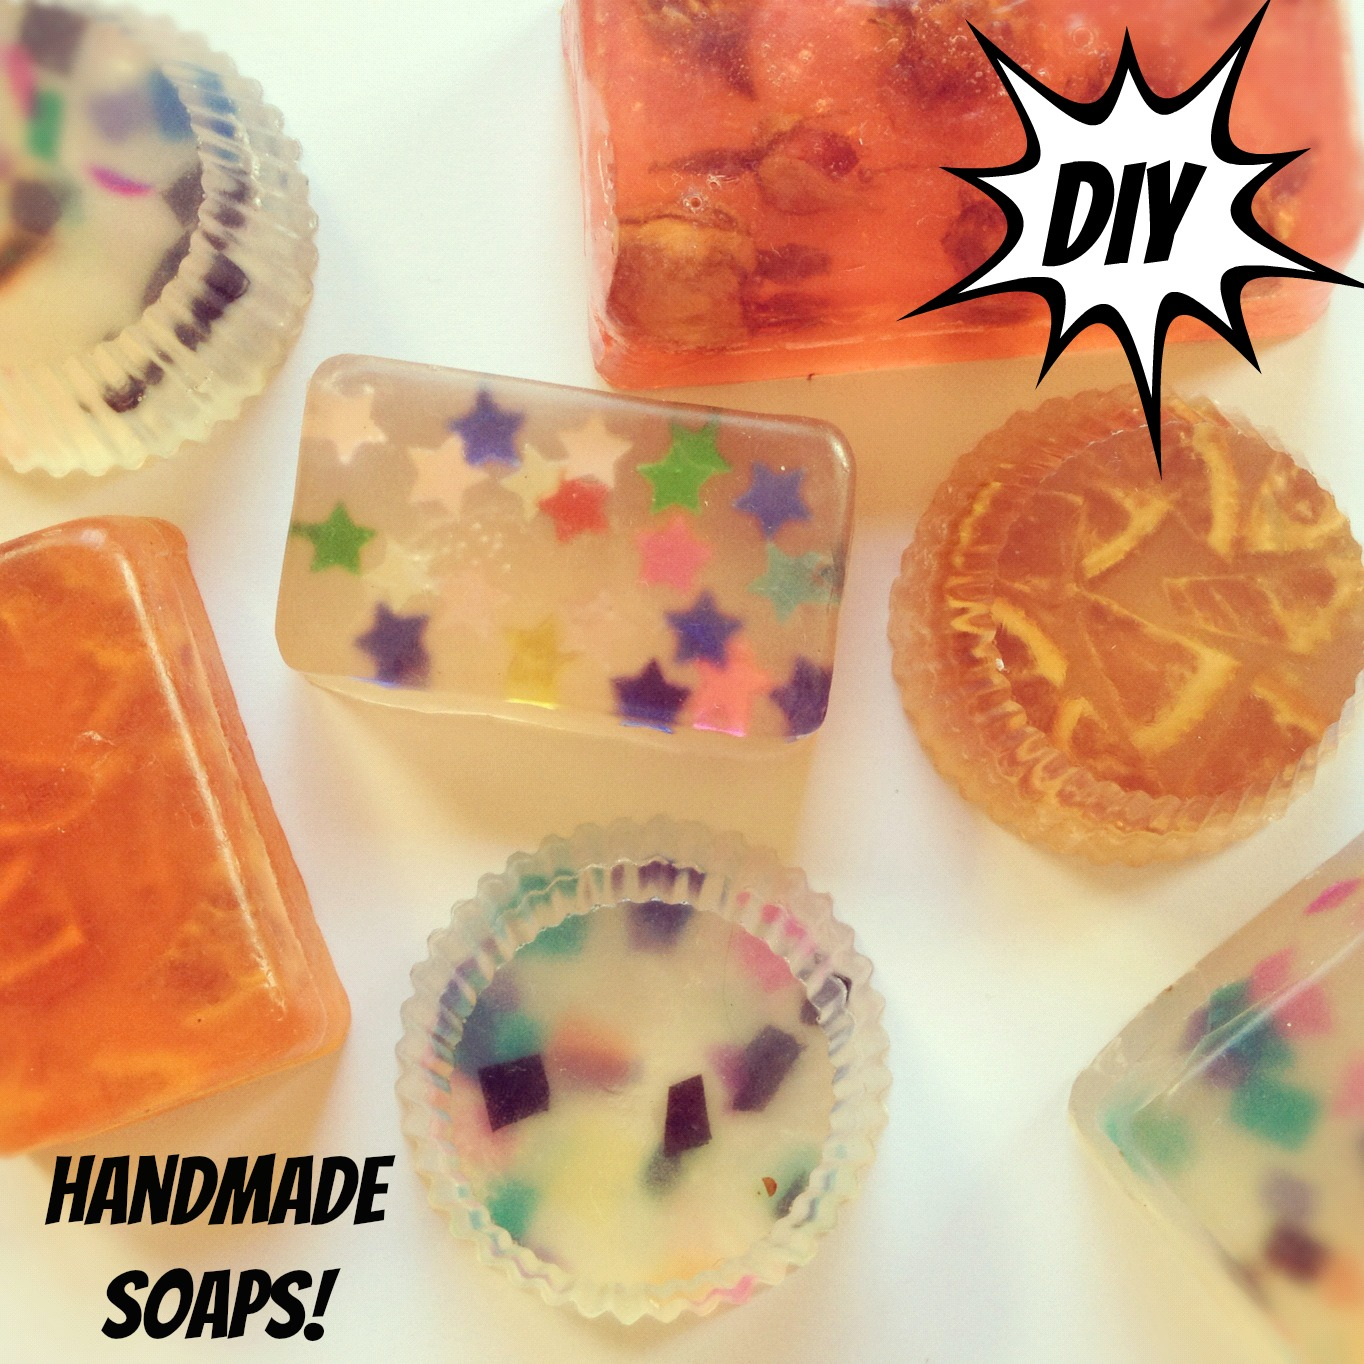 DIY Christmas Gift Ideas Handmade Soaps